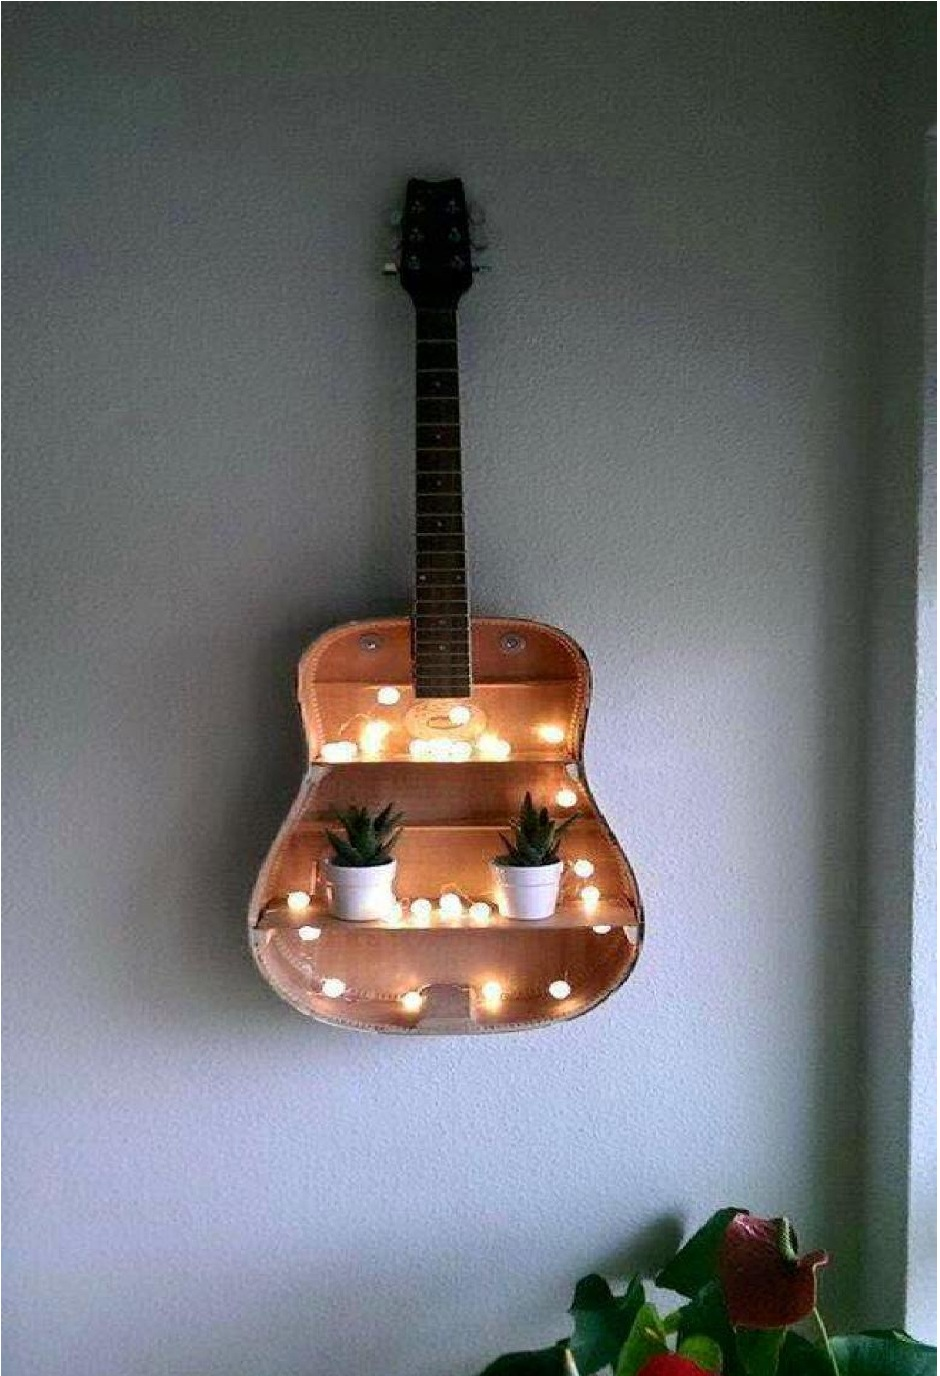 10 Creative Wall Decoration Ideas That Give A Professional ...